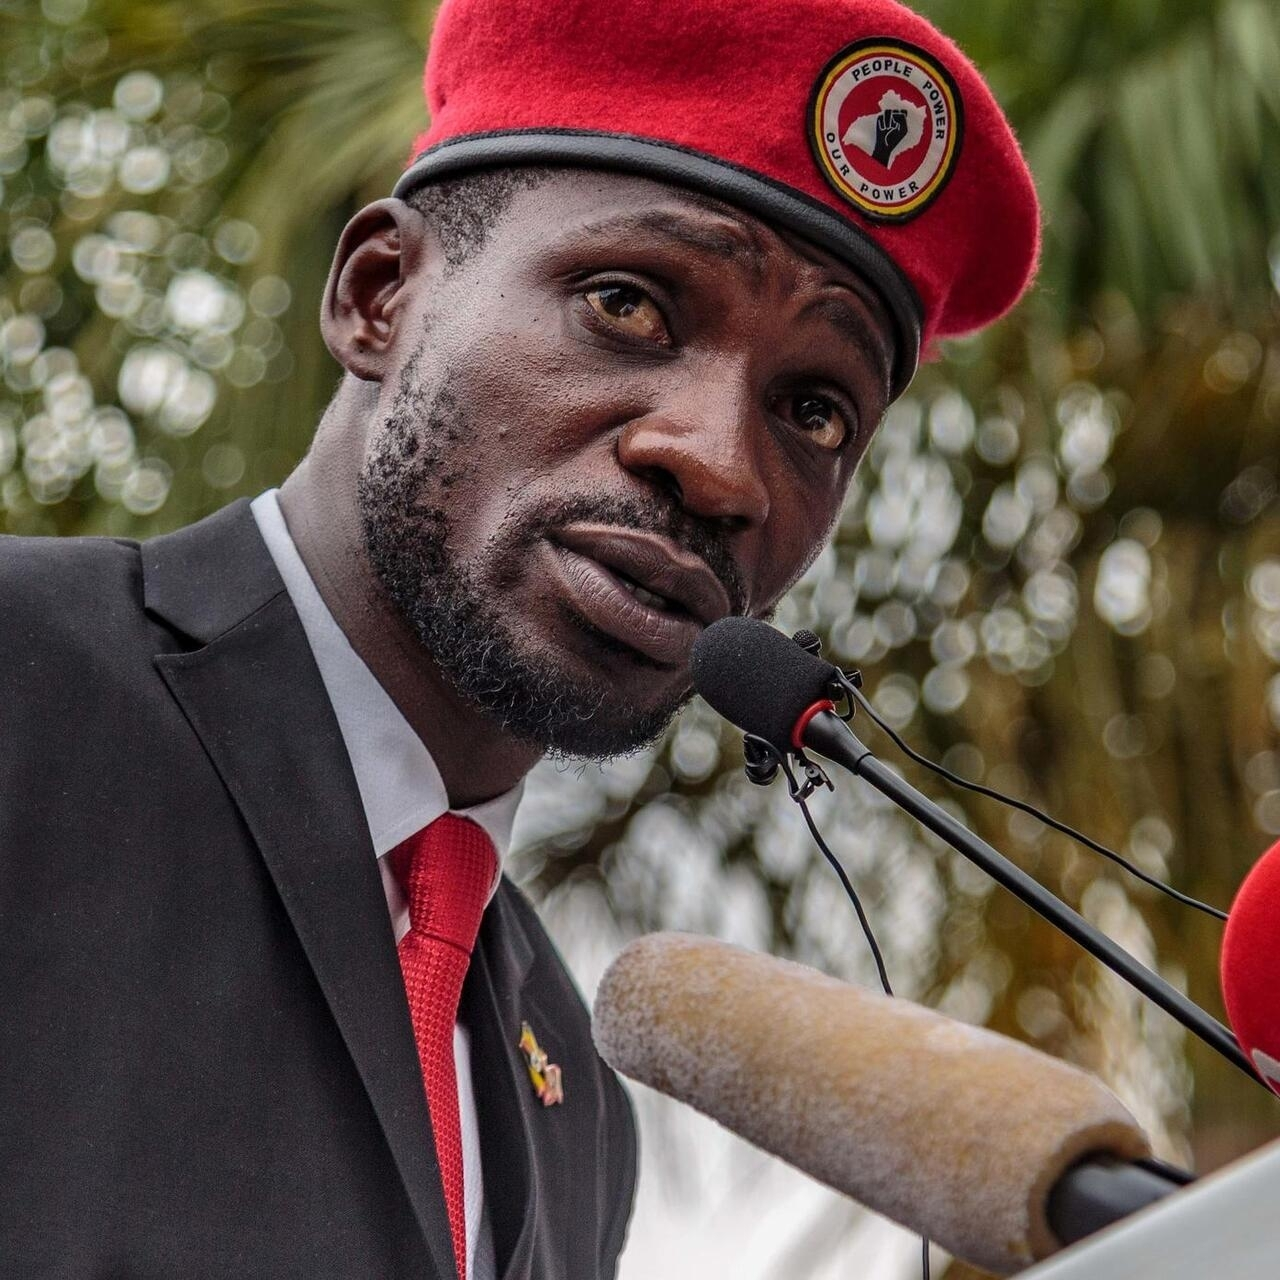 Bobi Wine wants to kick Sevo out of power